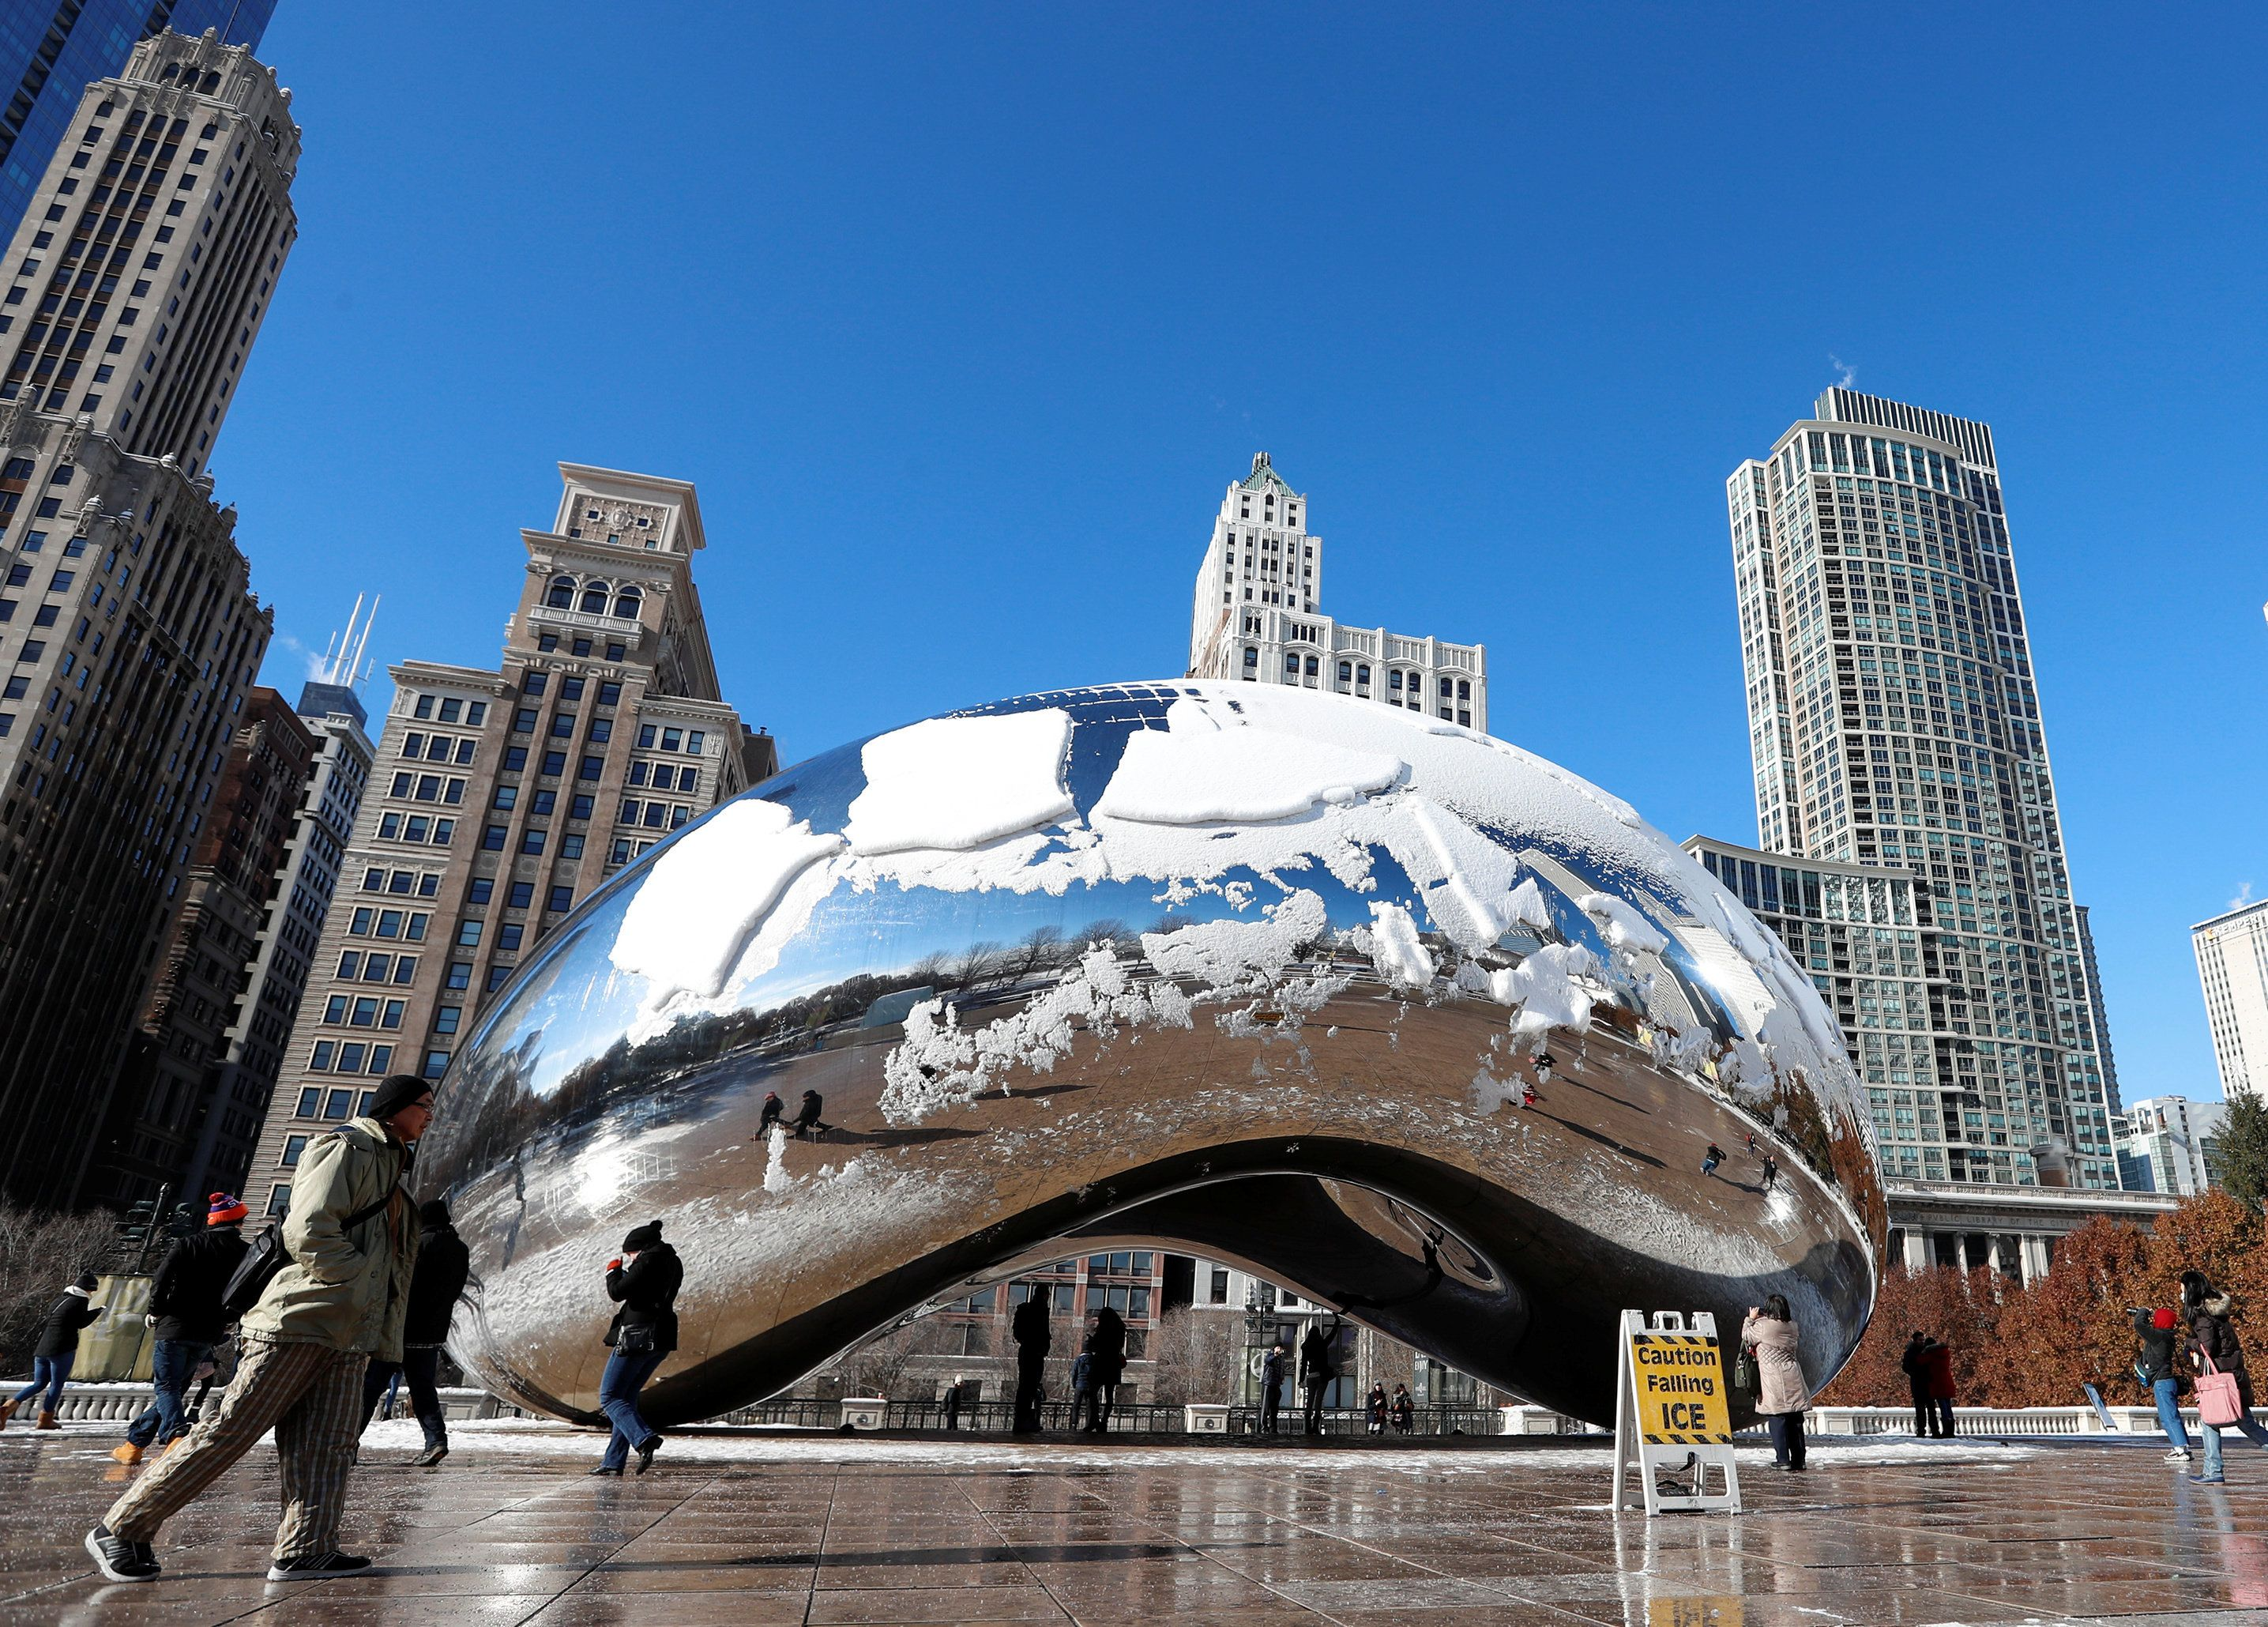 Sculptor Anish Kapoor Forces NRA To Remove His Artwork From 'Abhorrent' Video